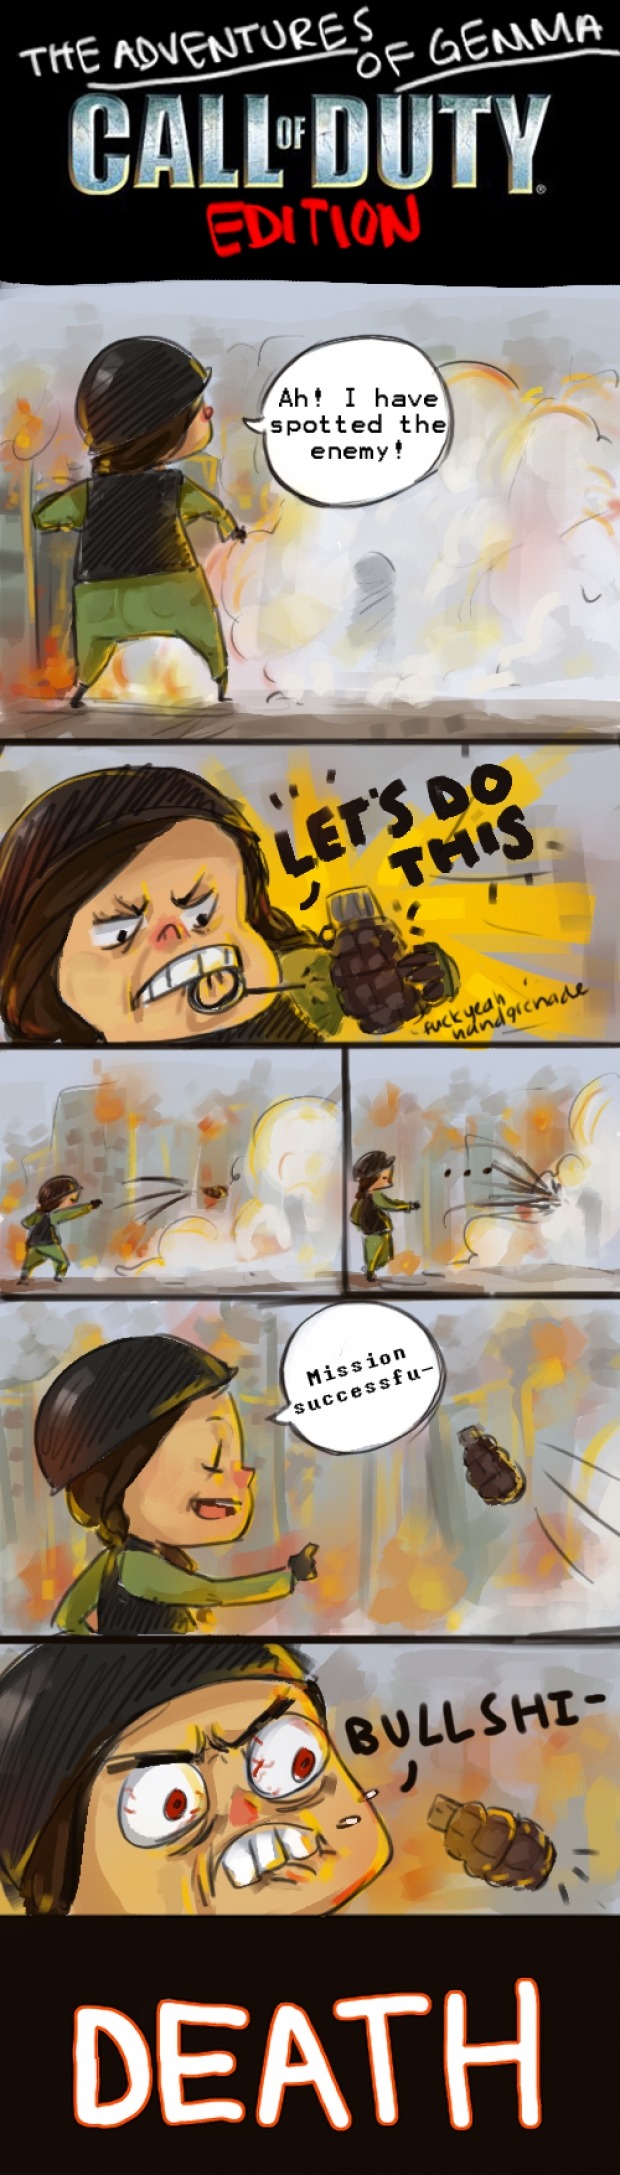 The Adventures of Gemma: Call of Duty Edition